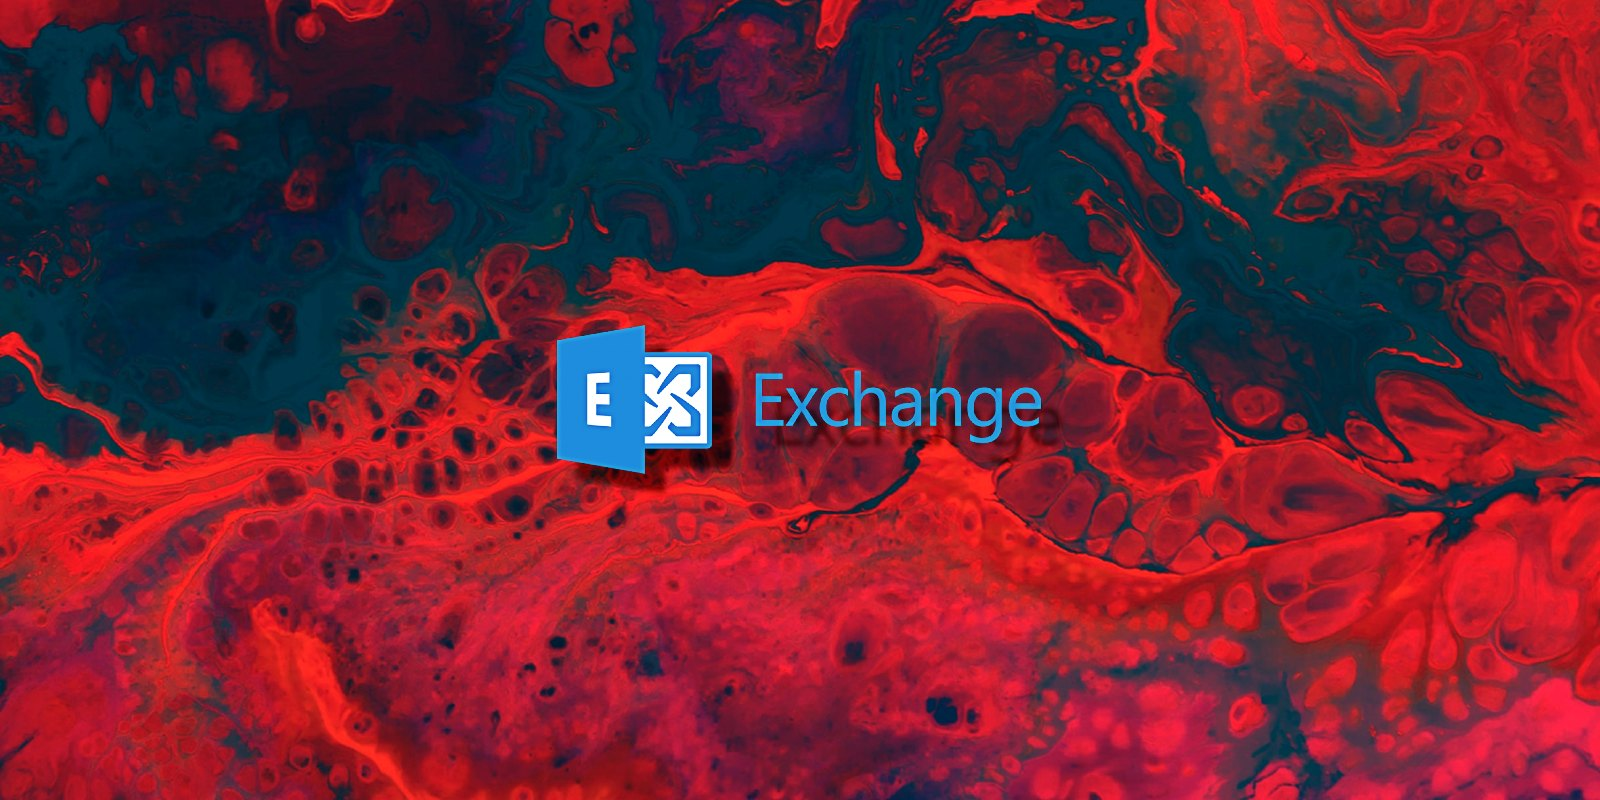 Microsoft Exchange exploits now used by cryptomining malware